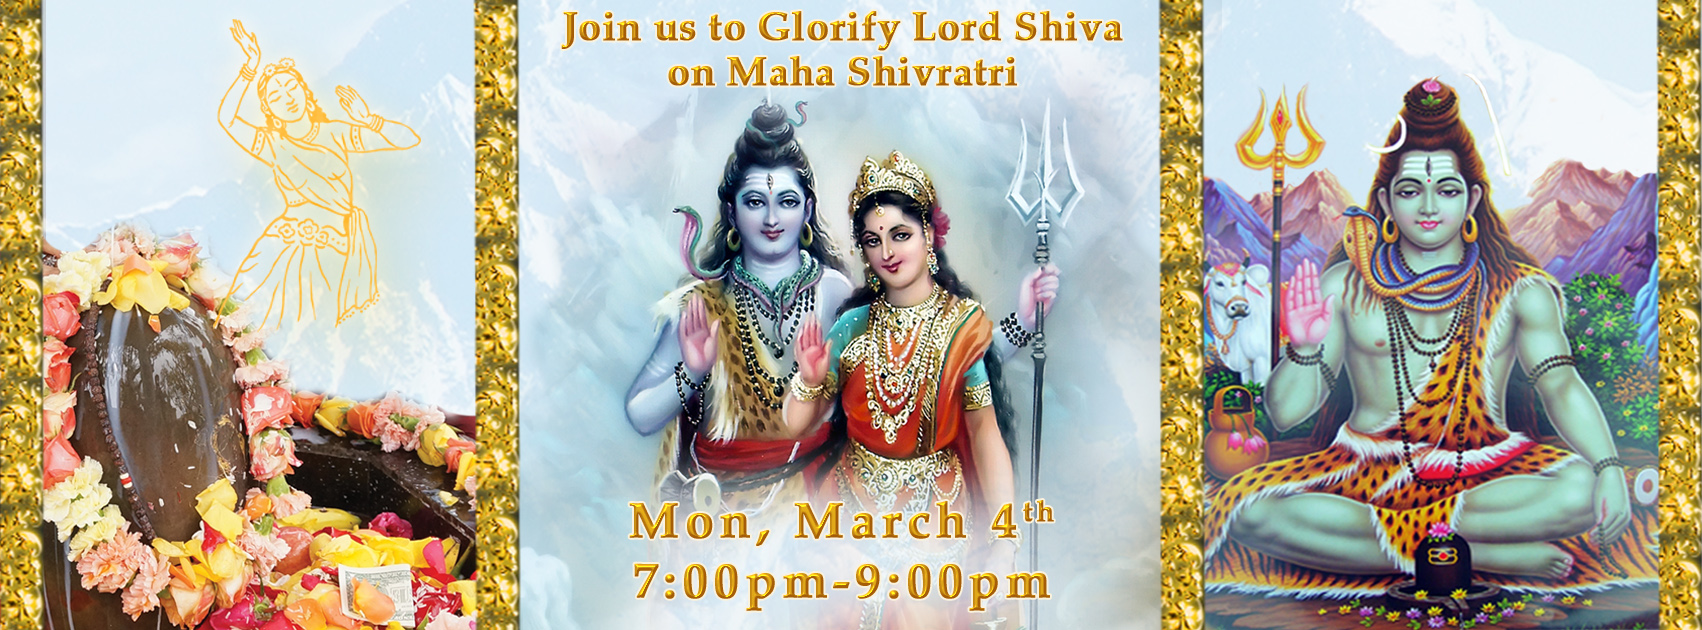 Shivratri Dallas C facebook